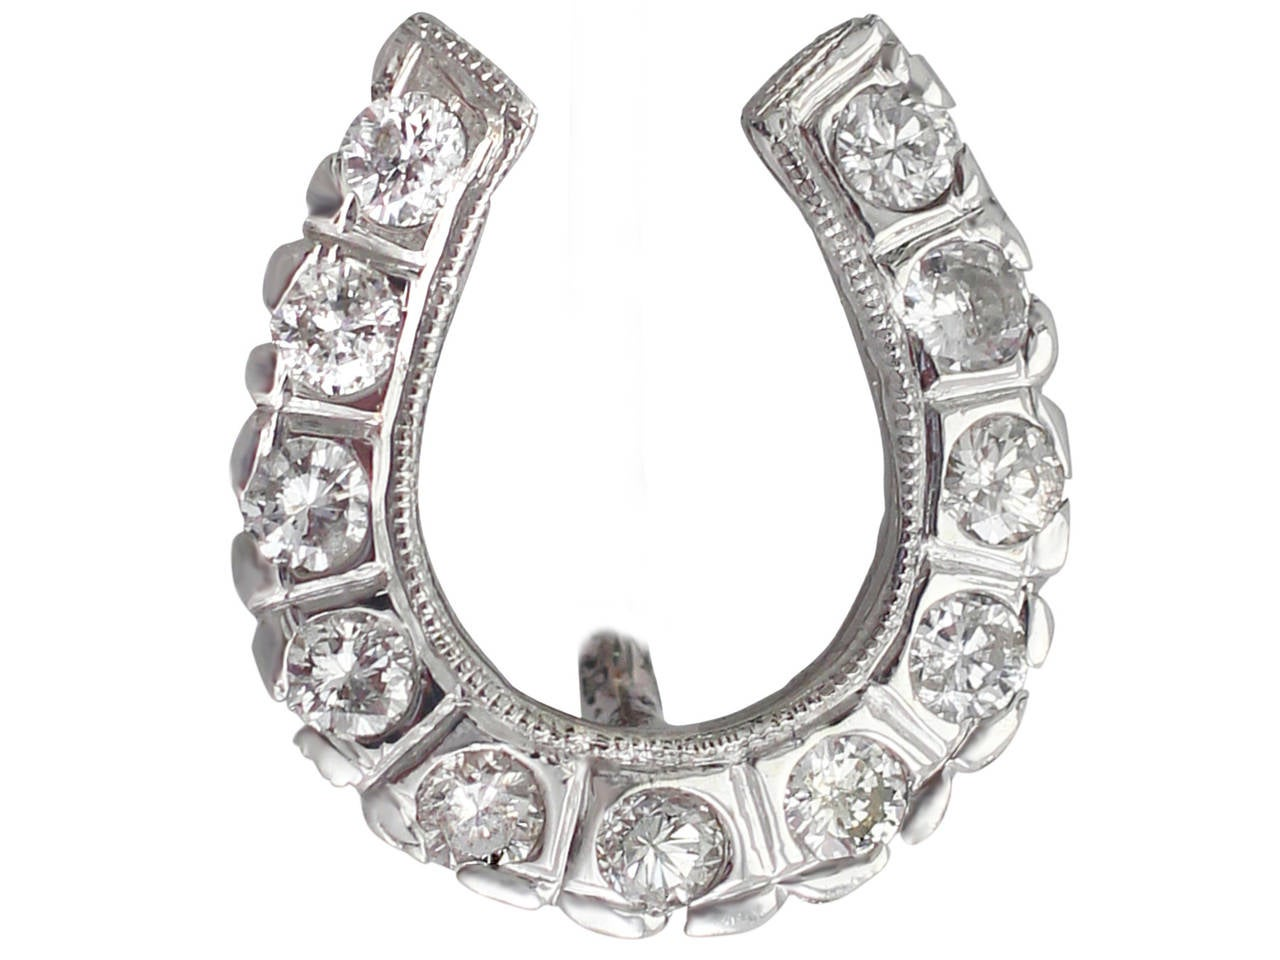 0.37Ct Diamond, 14k White Gold Horseshoe Pin Brooch - Vintage Circa 1940 For Sale 3